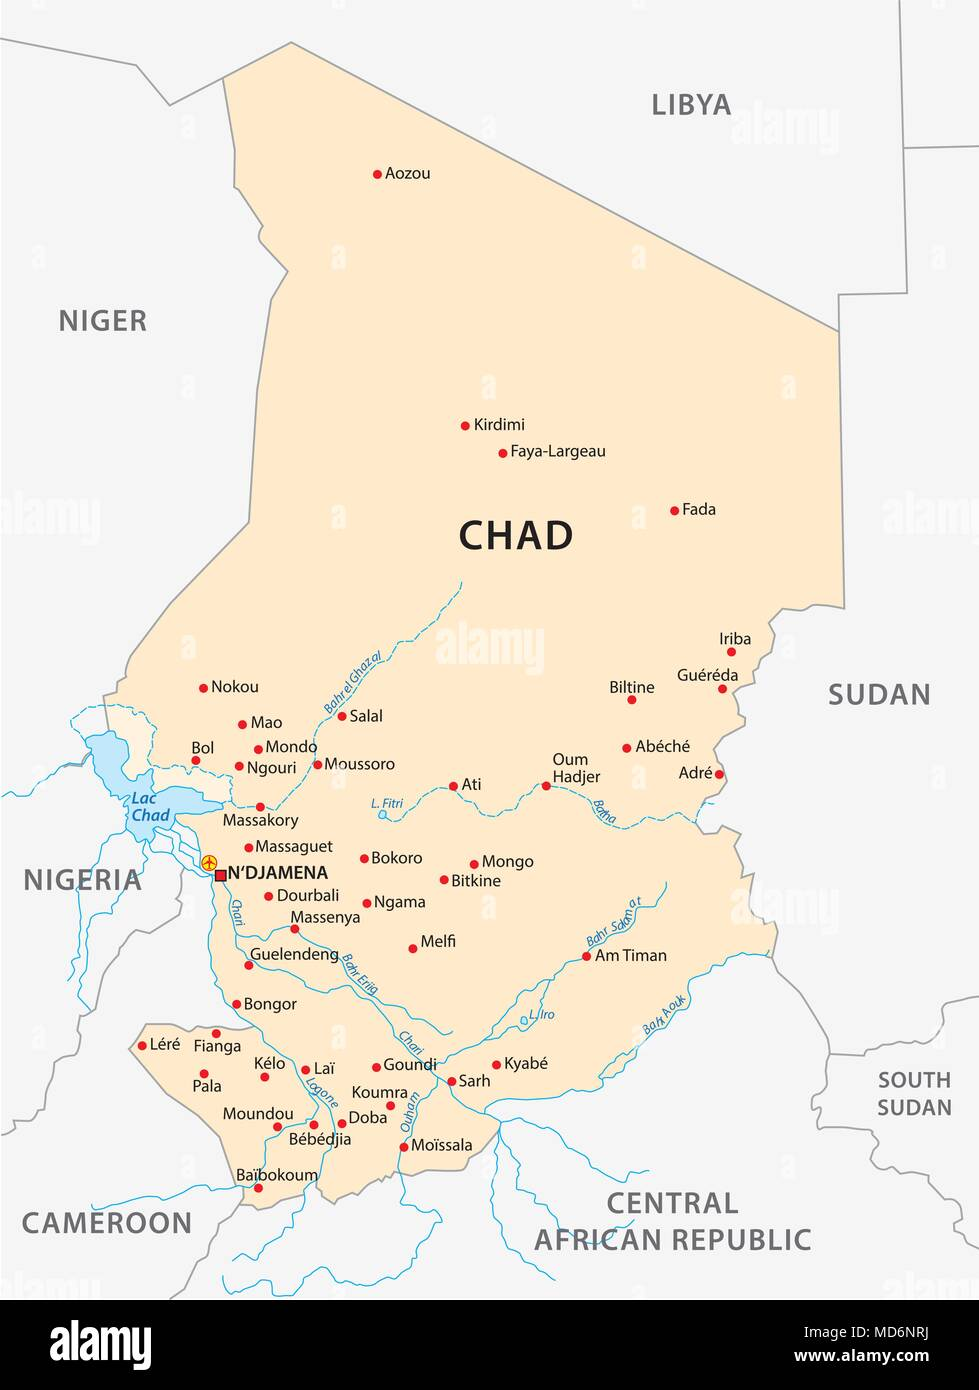 republic of Chad vector map, africa - Stock Image